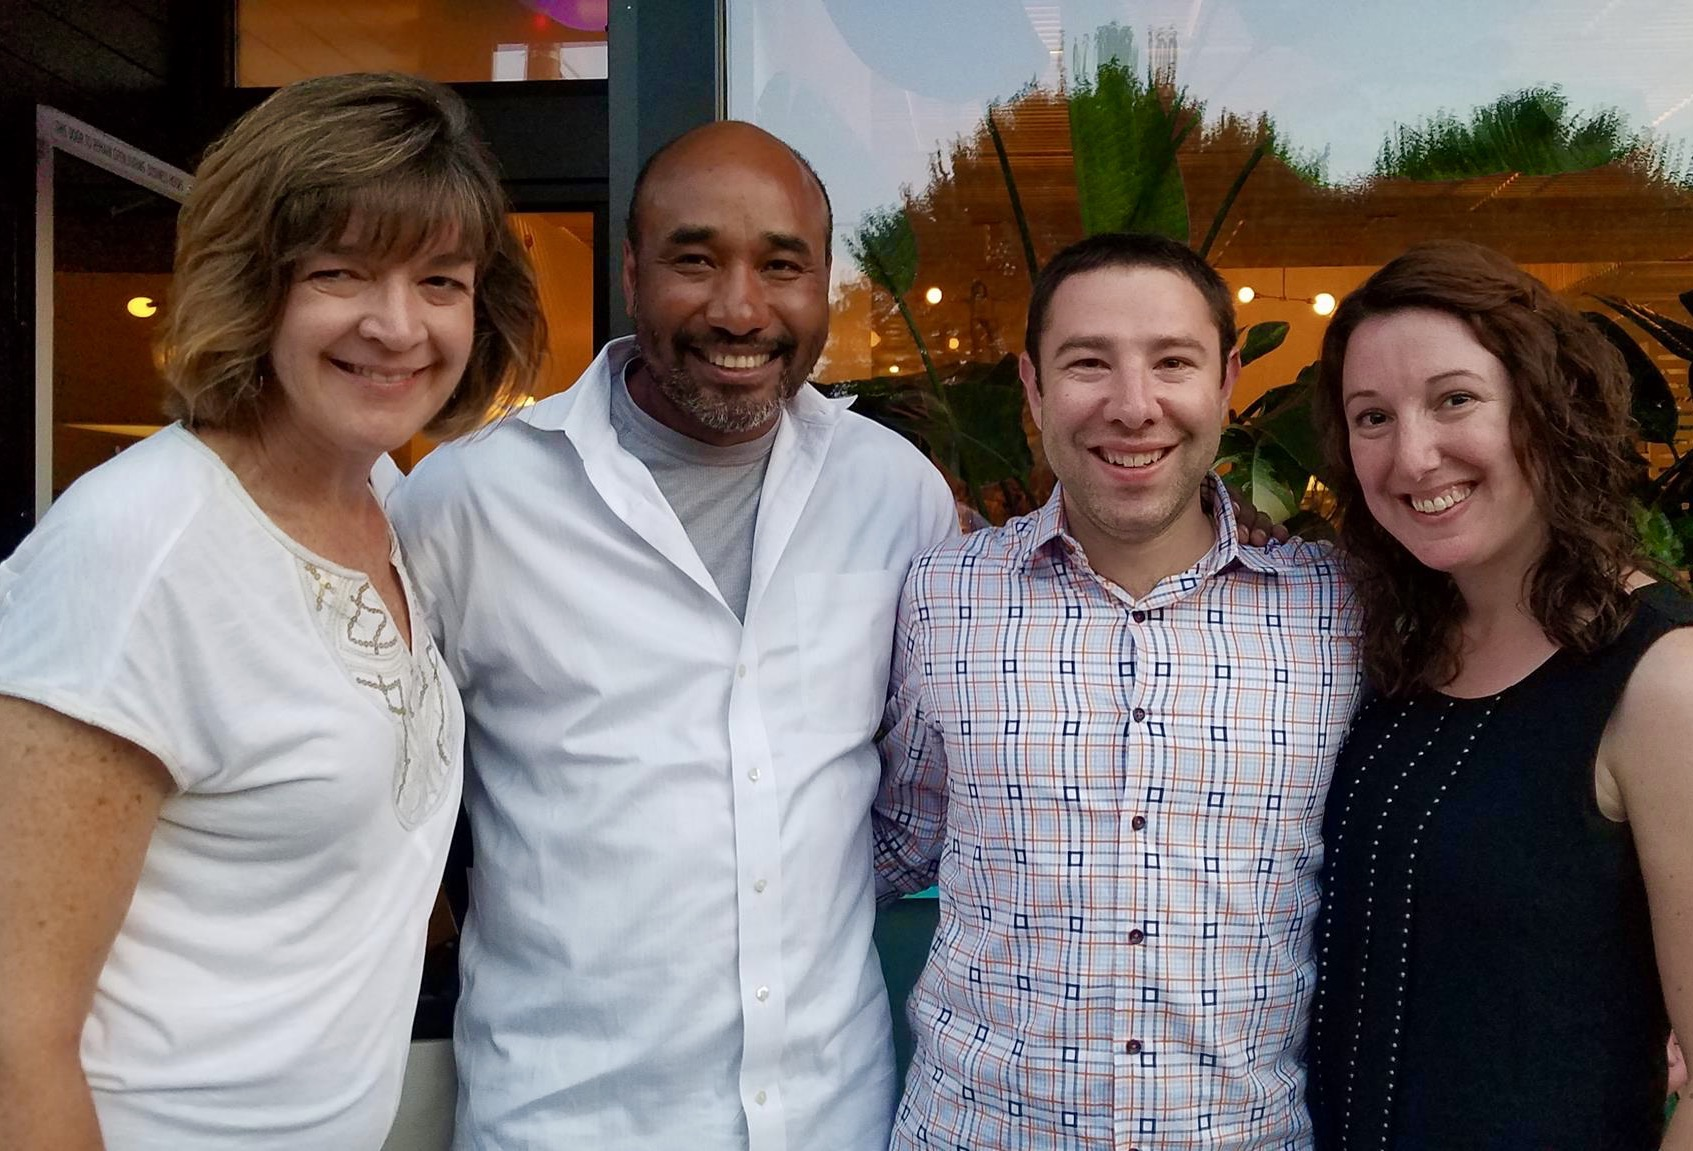 Marnay, Paul, Marcel and Martha at Tusk in Portland